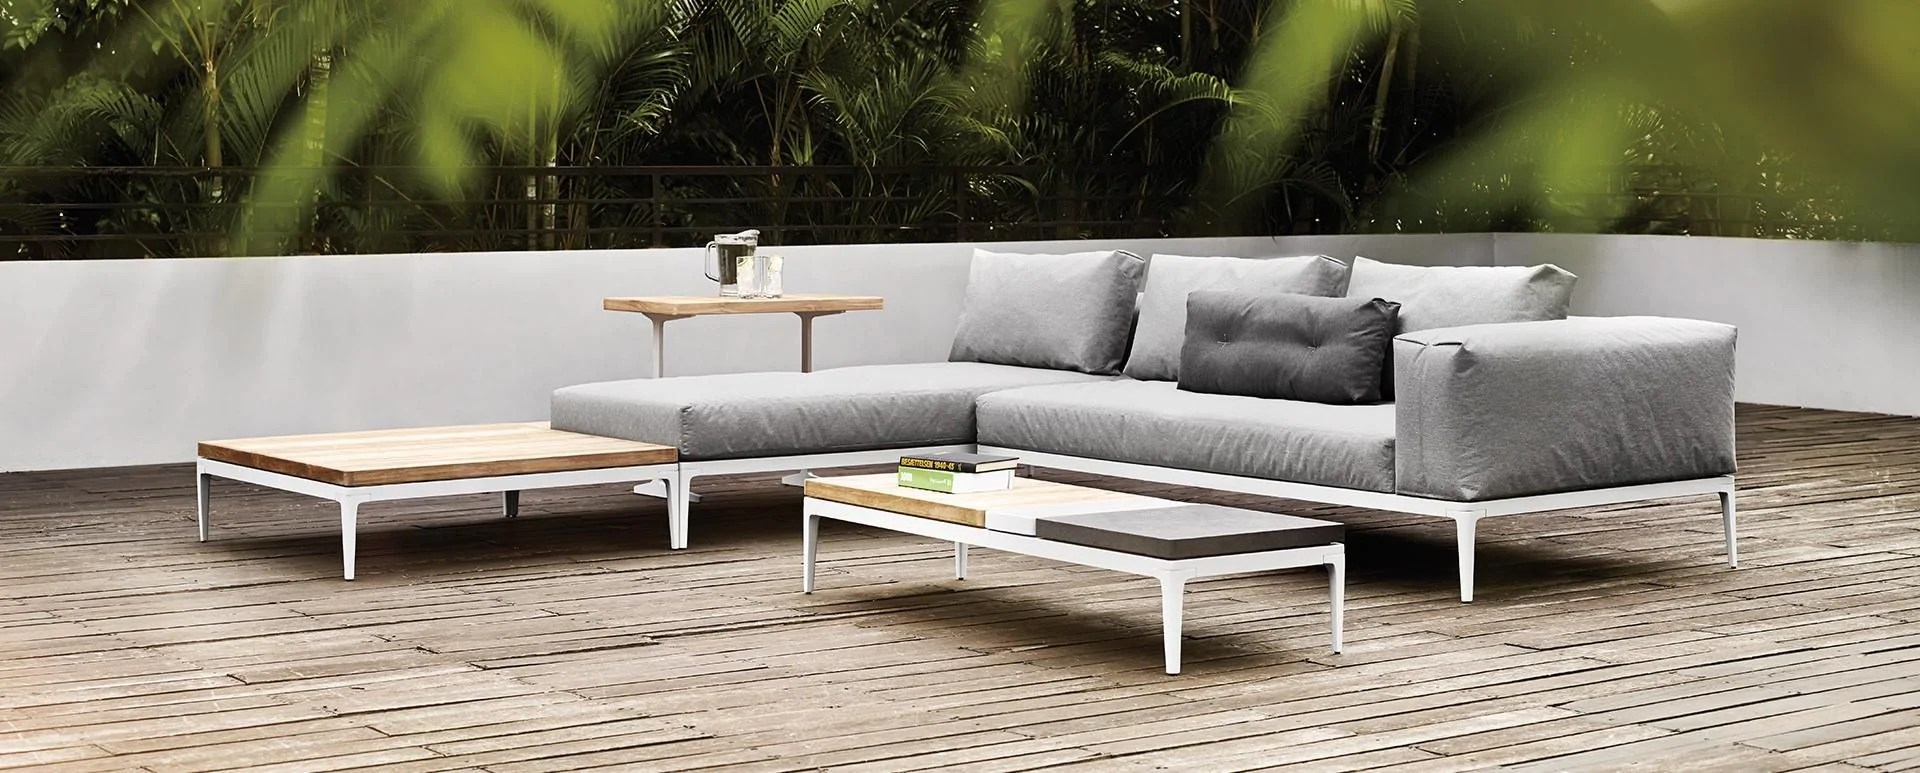 Should You Buy Low End Big Box Retailer Patio Furniture Or